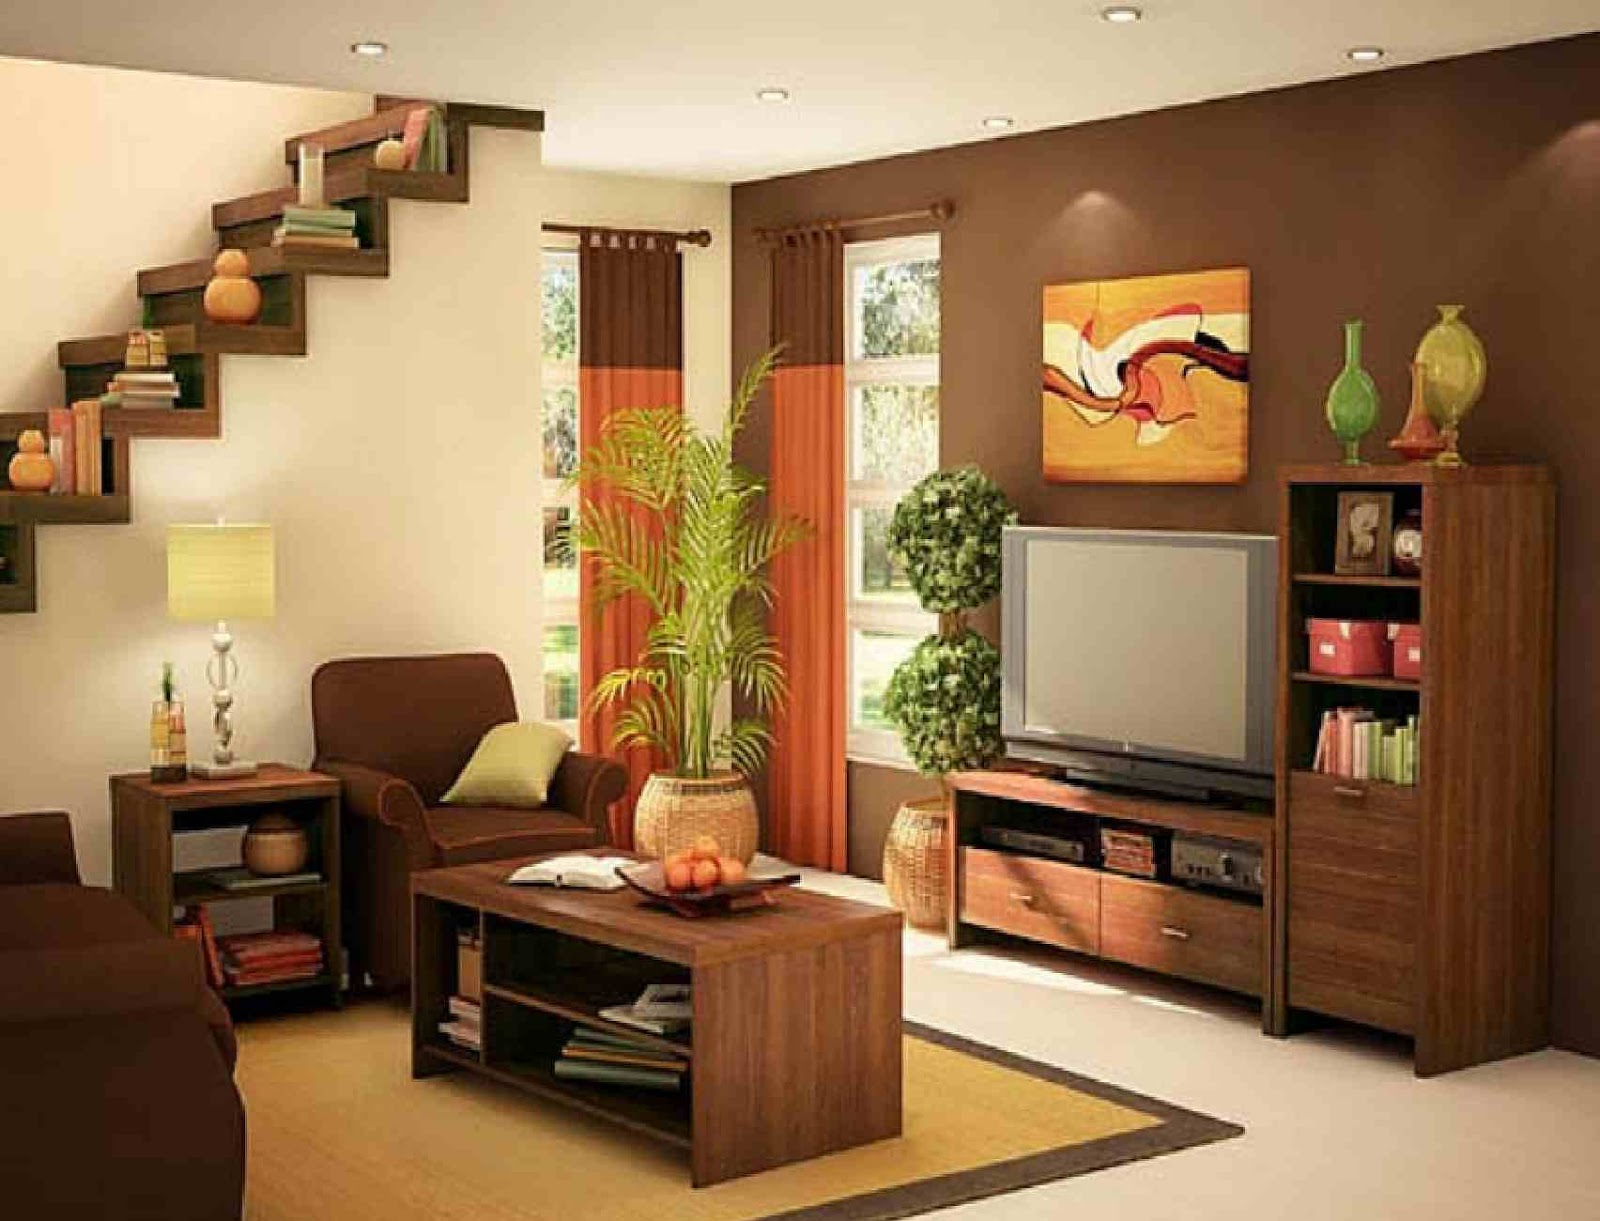 simple living room designs - Simple Interior Design Living Room